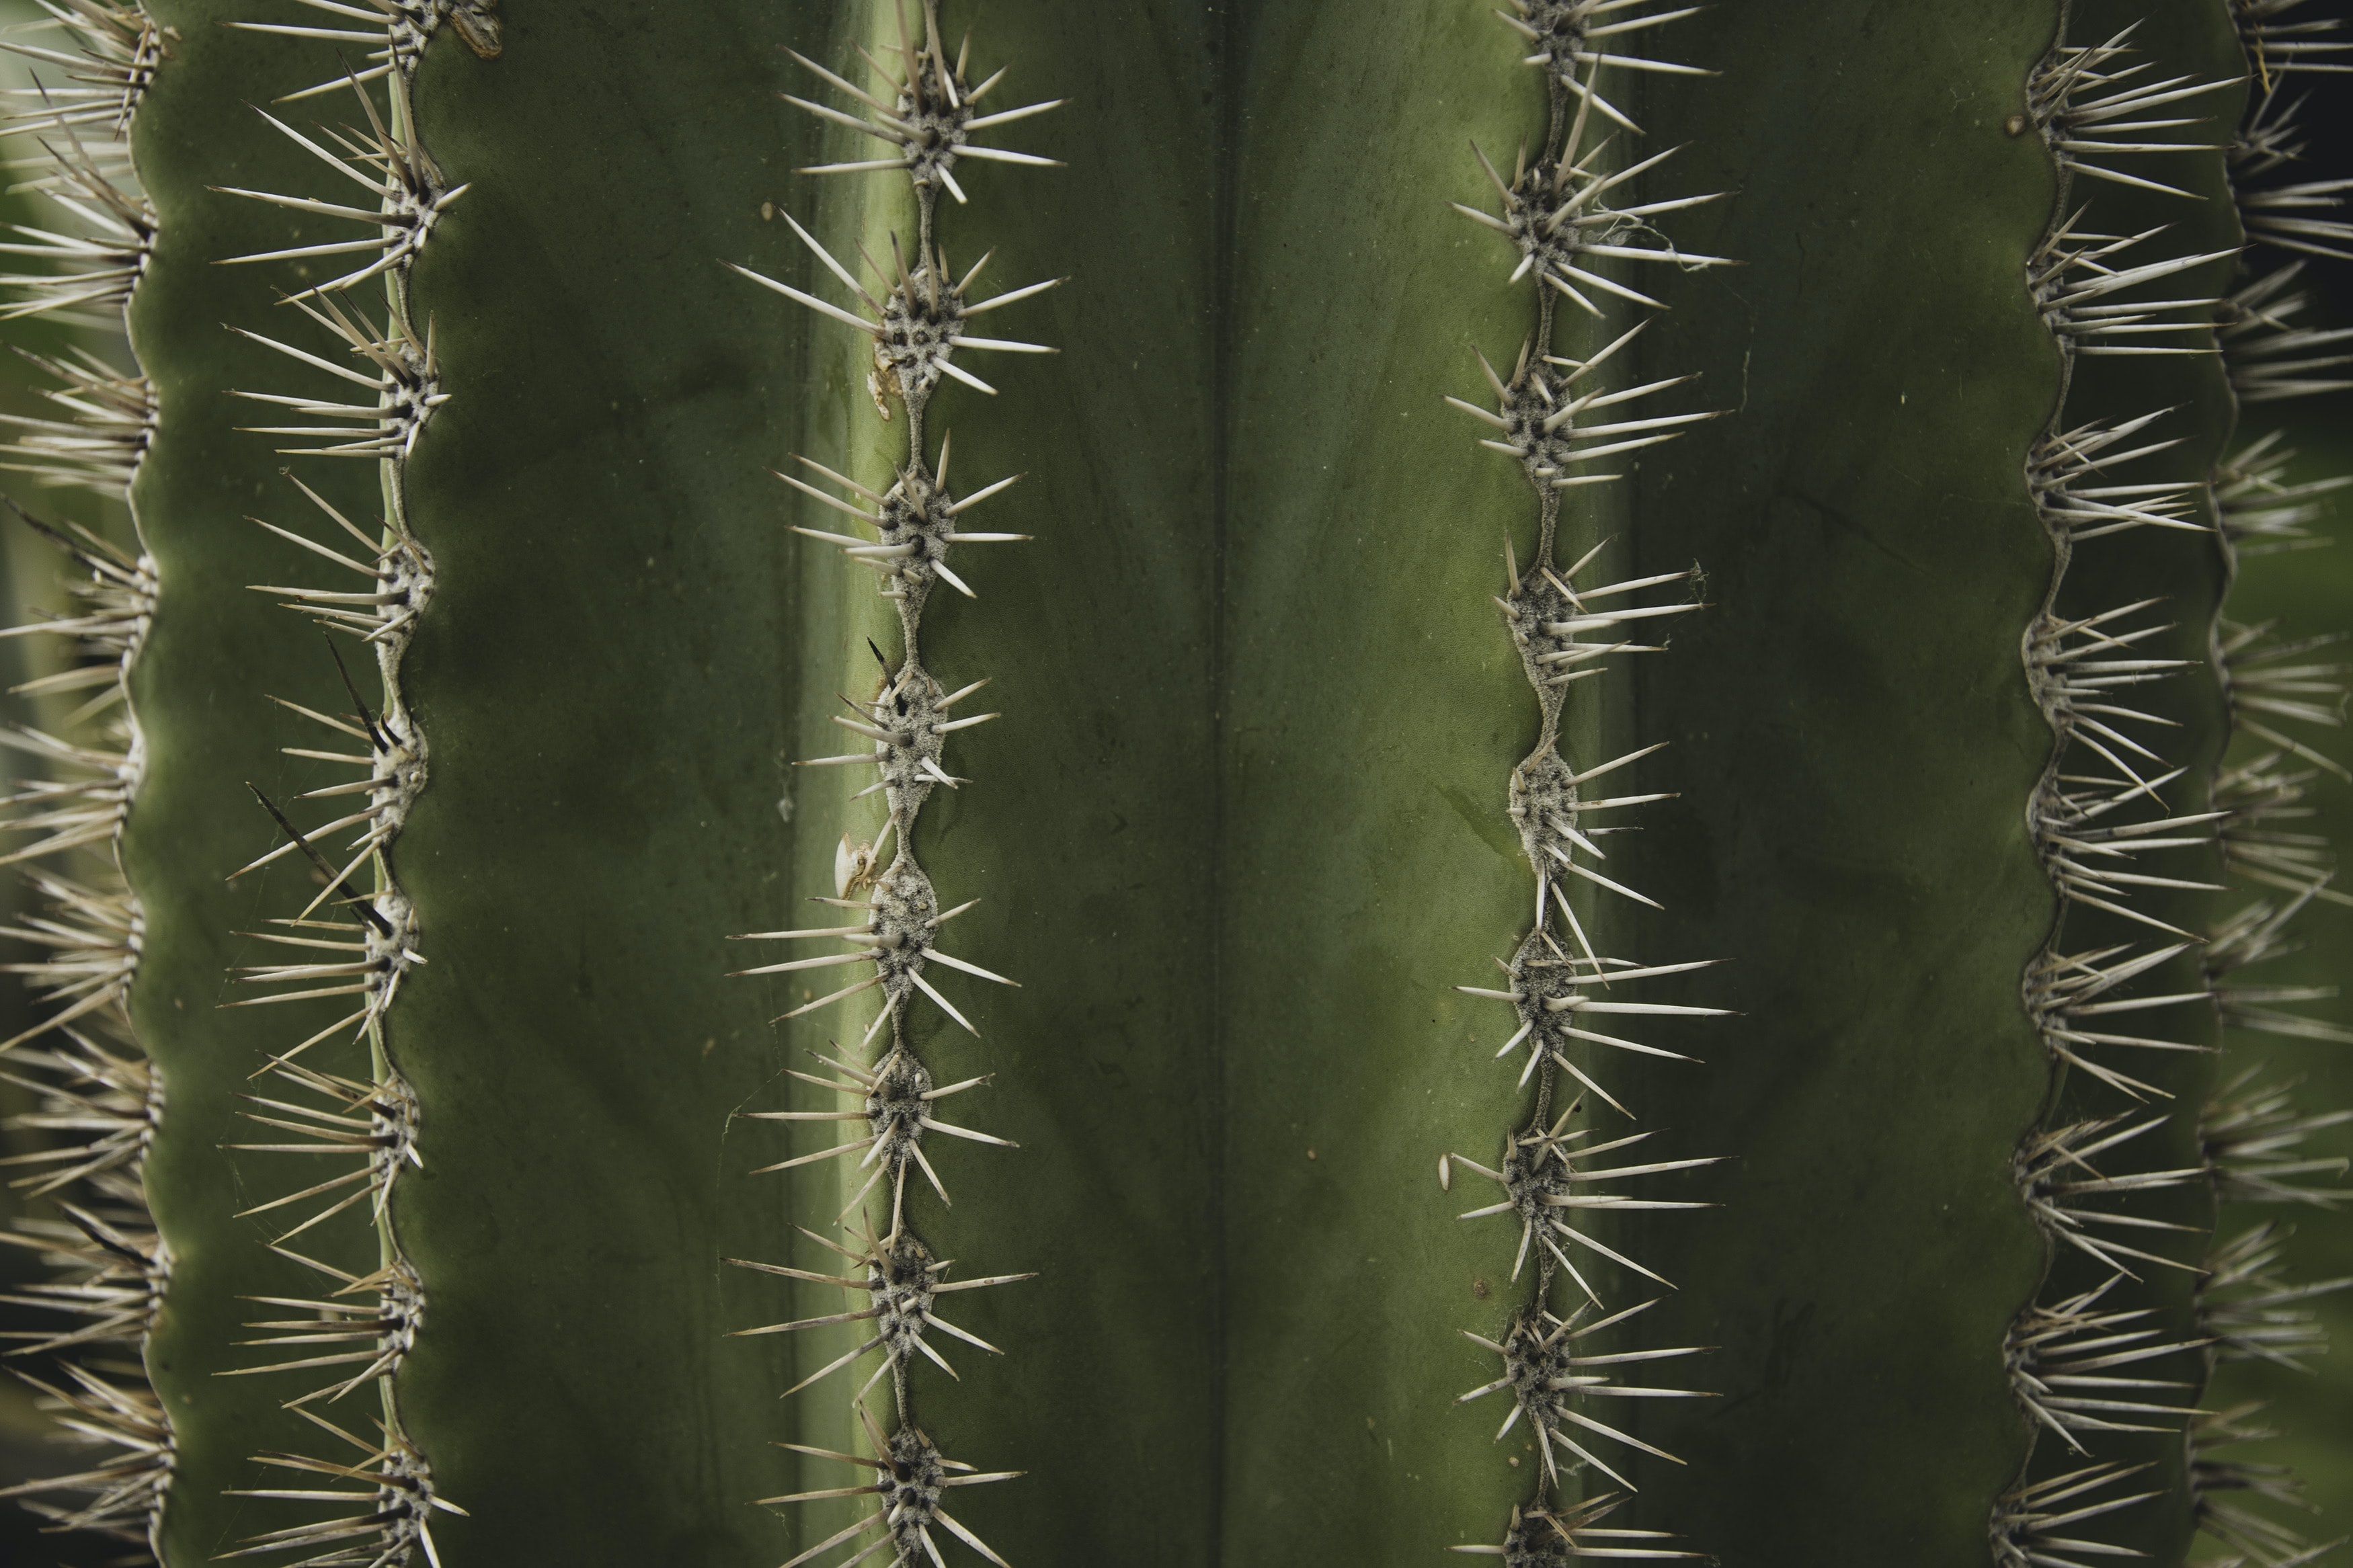 macro photograph of cactus plant